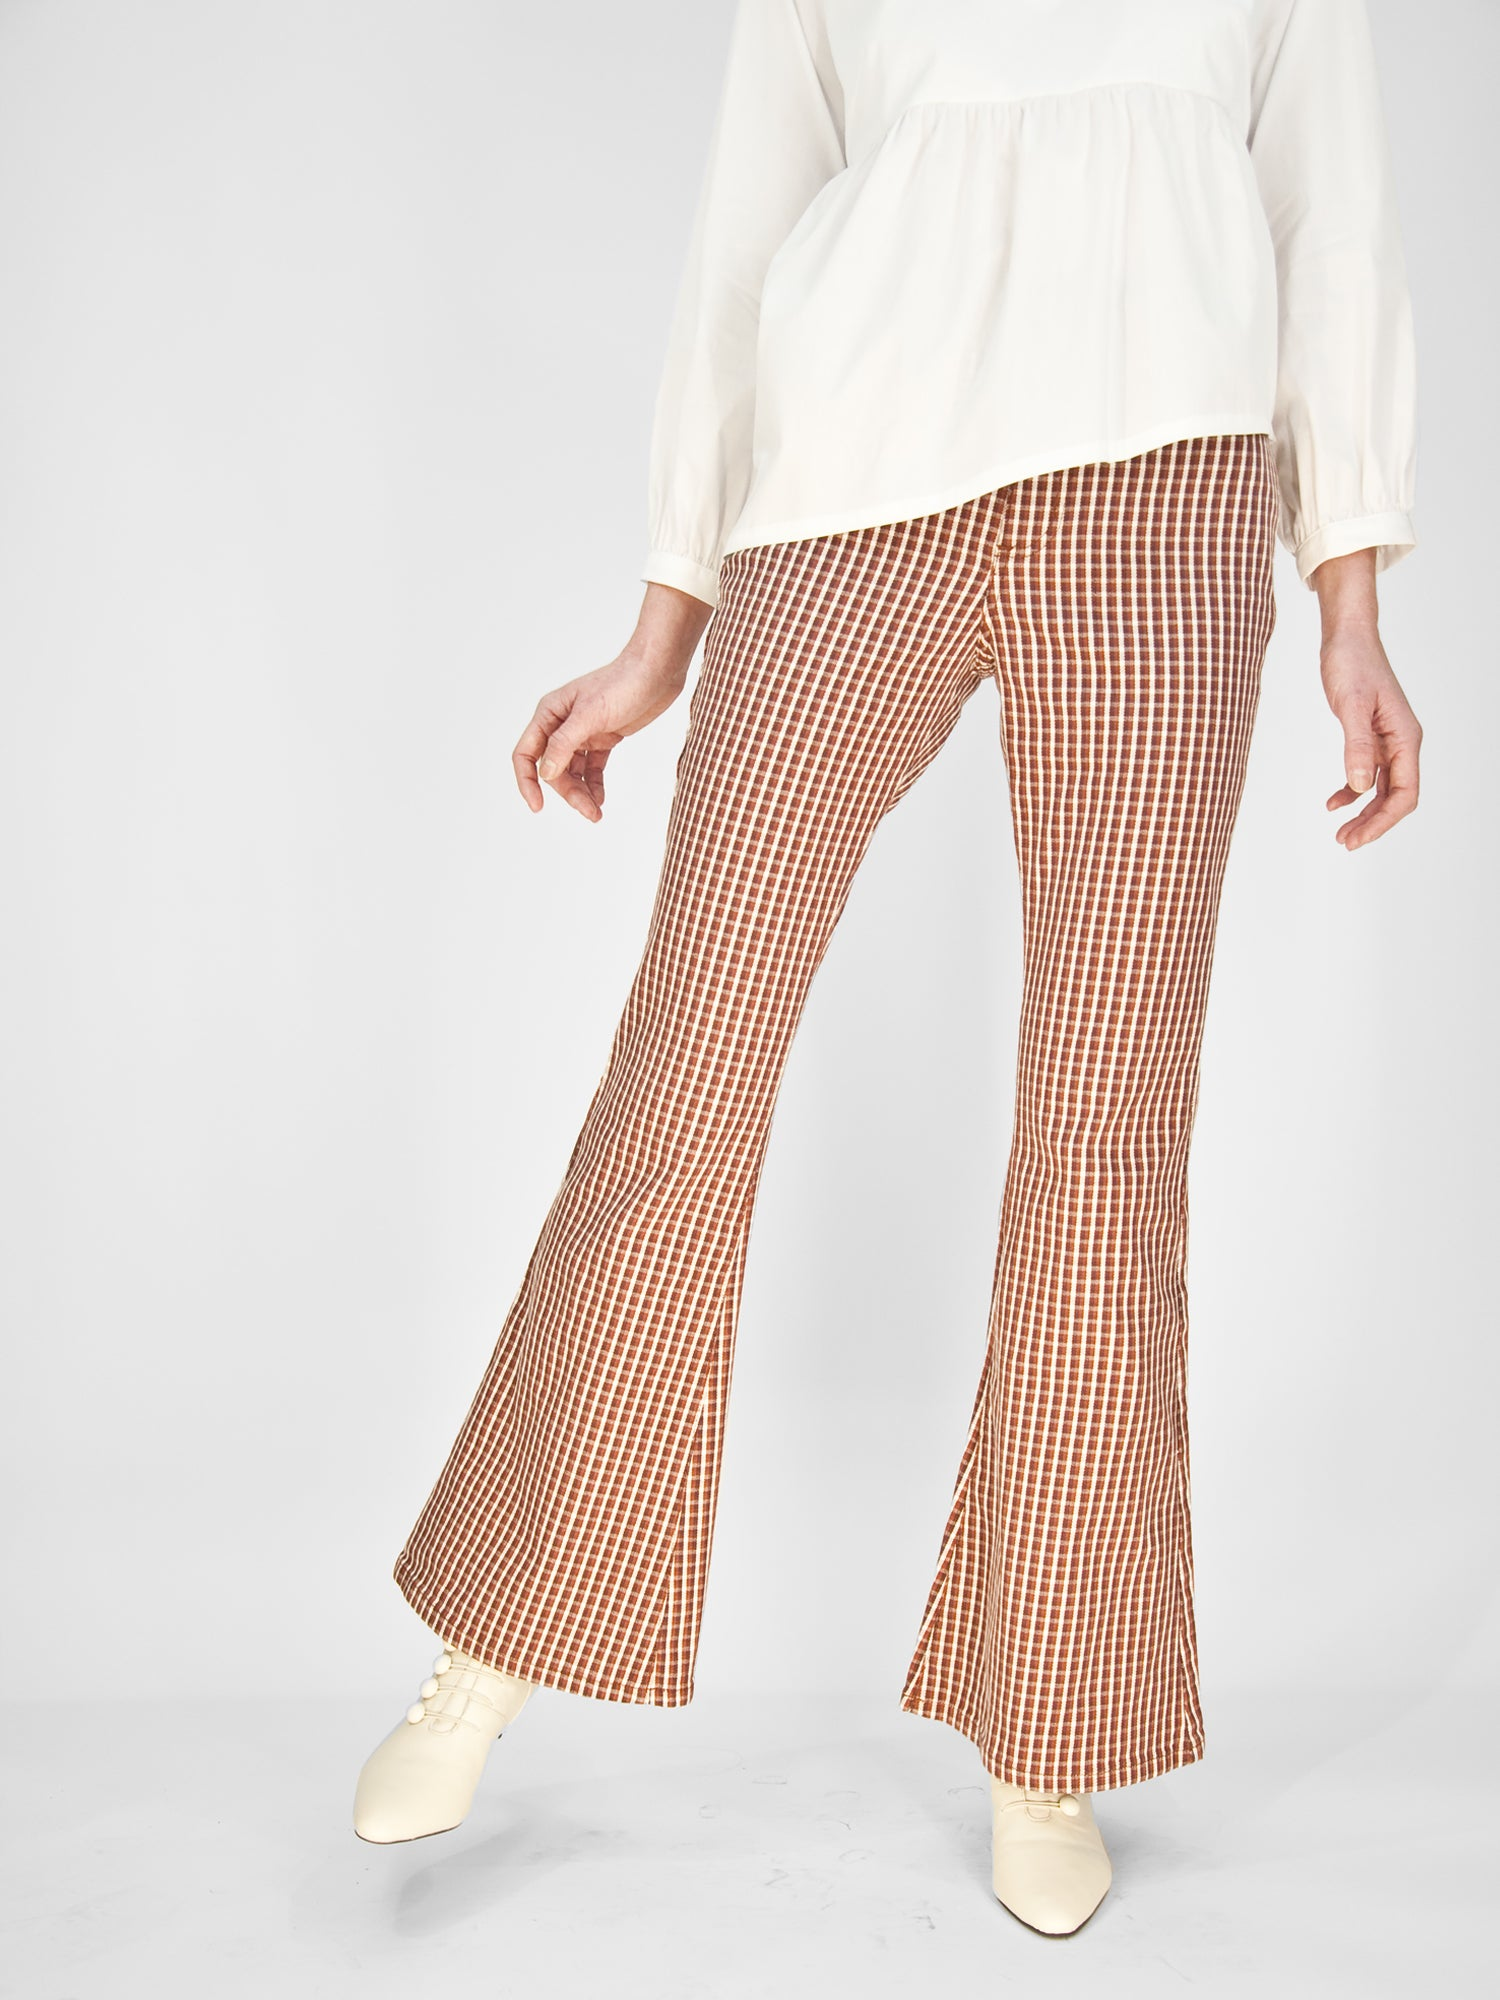 Lee - High Rise Flare / Vintage Houndstooth